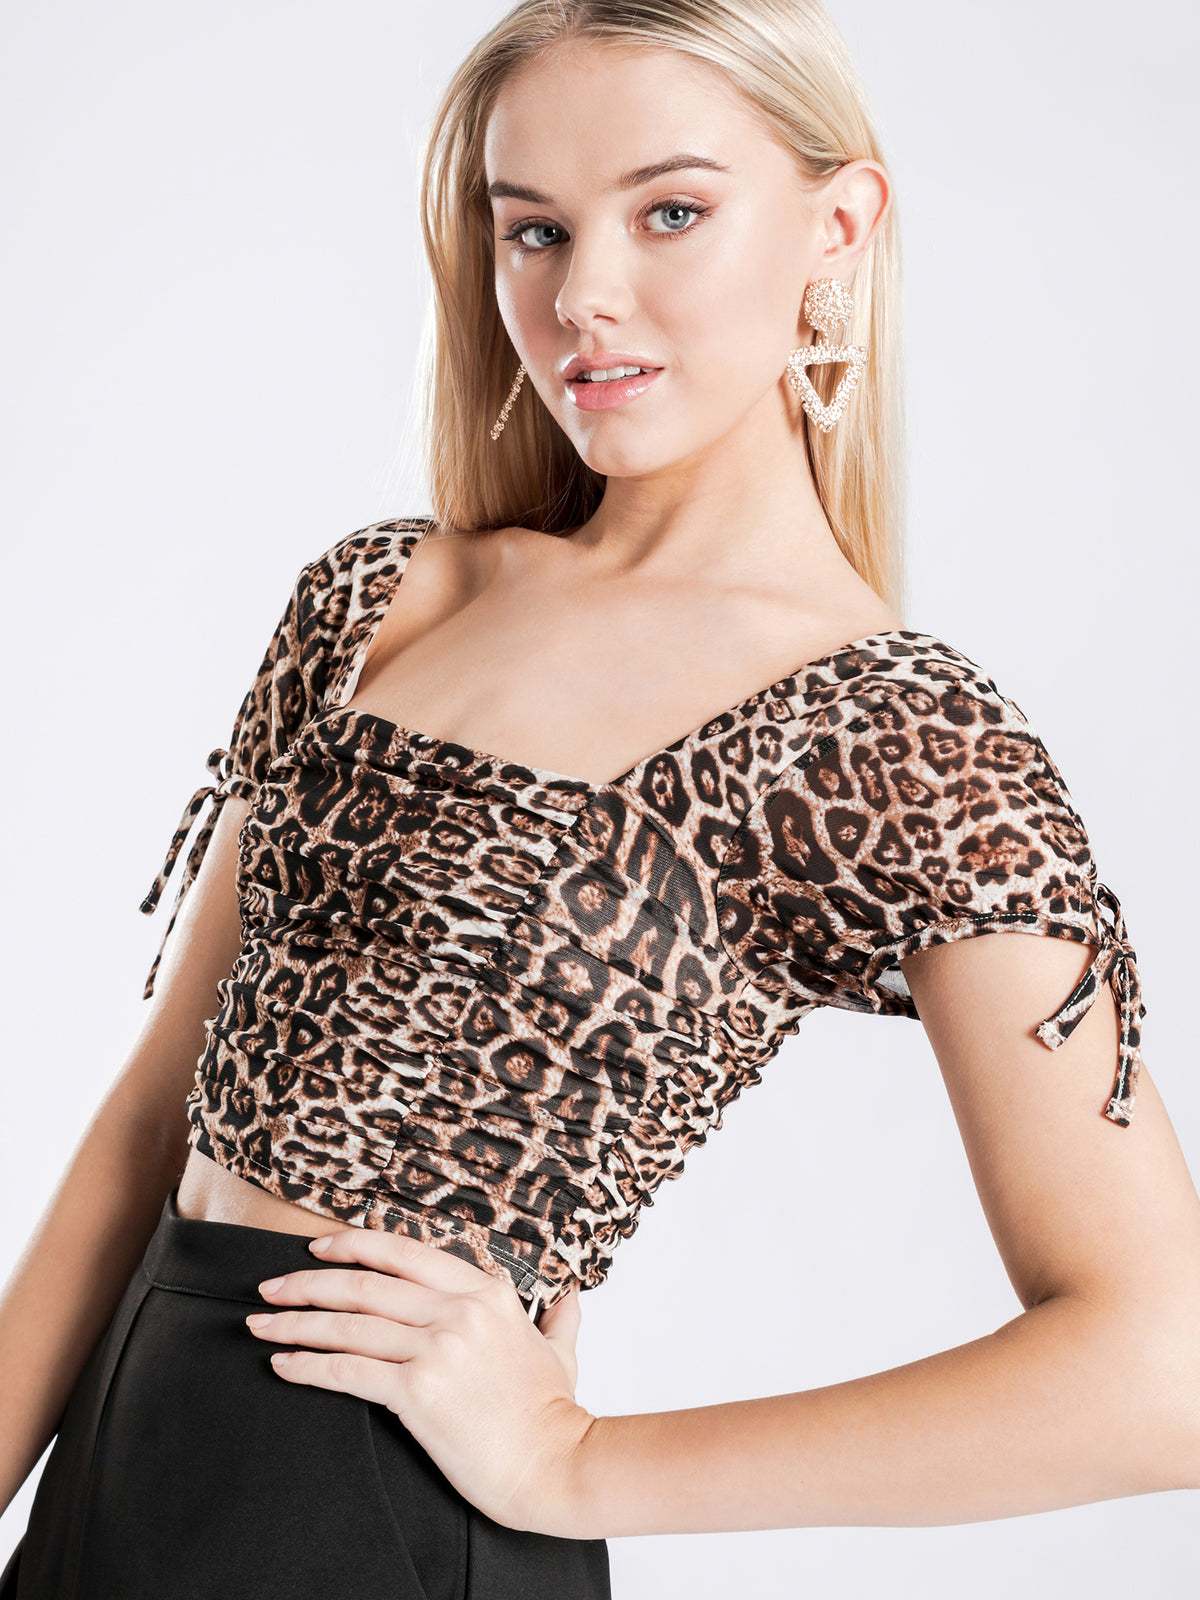 Deanna Gathered Top in Leopard